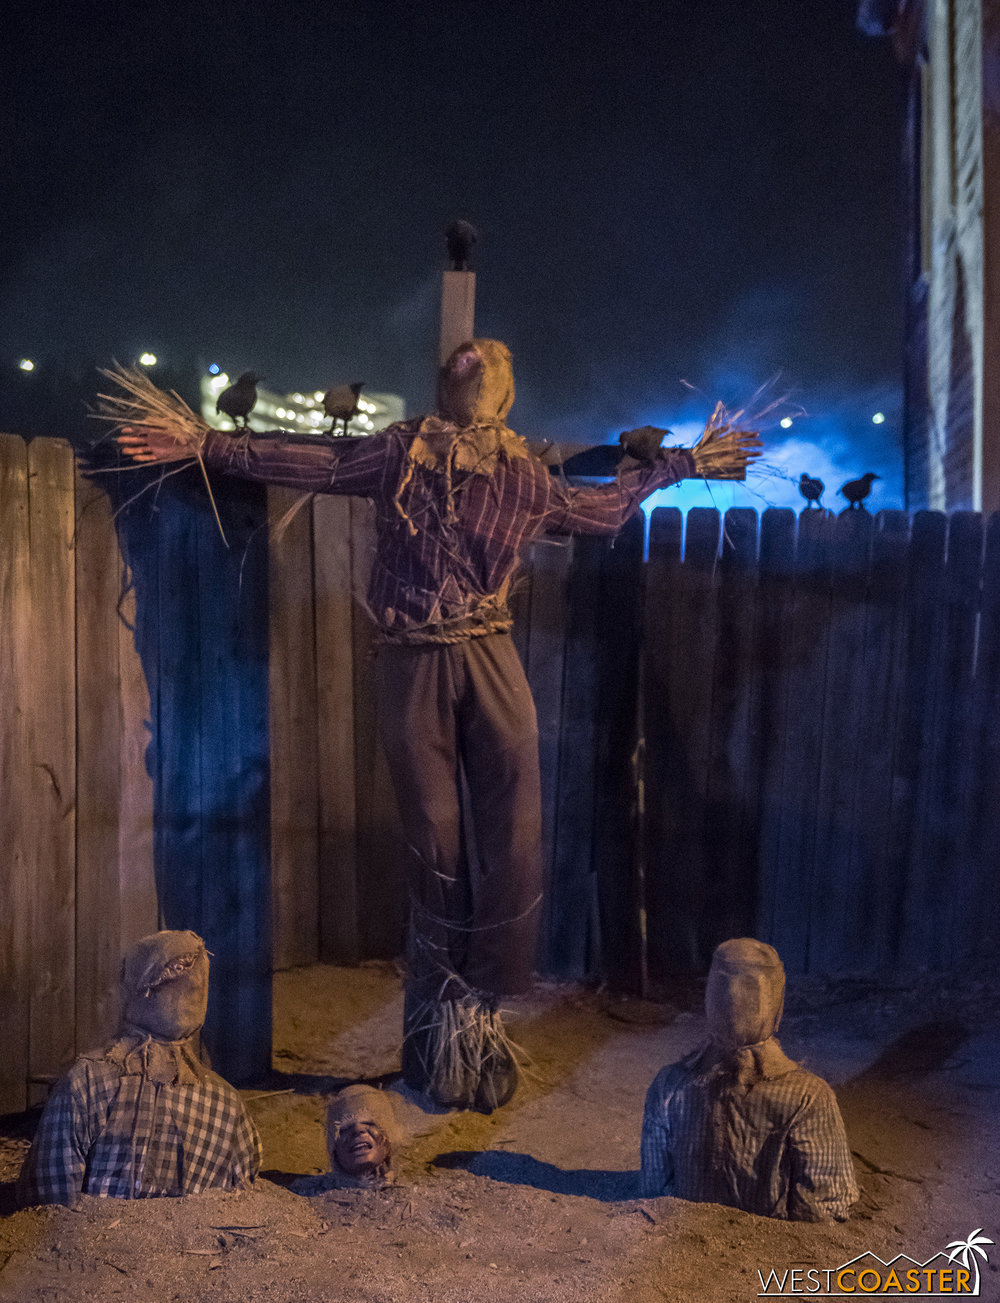 I kind of love the concept of scarecrows planting humans vs the other way around. They could have run even more with it by having the planted humans be harvested as zombies.